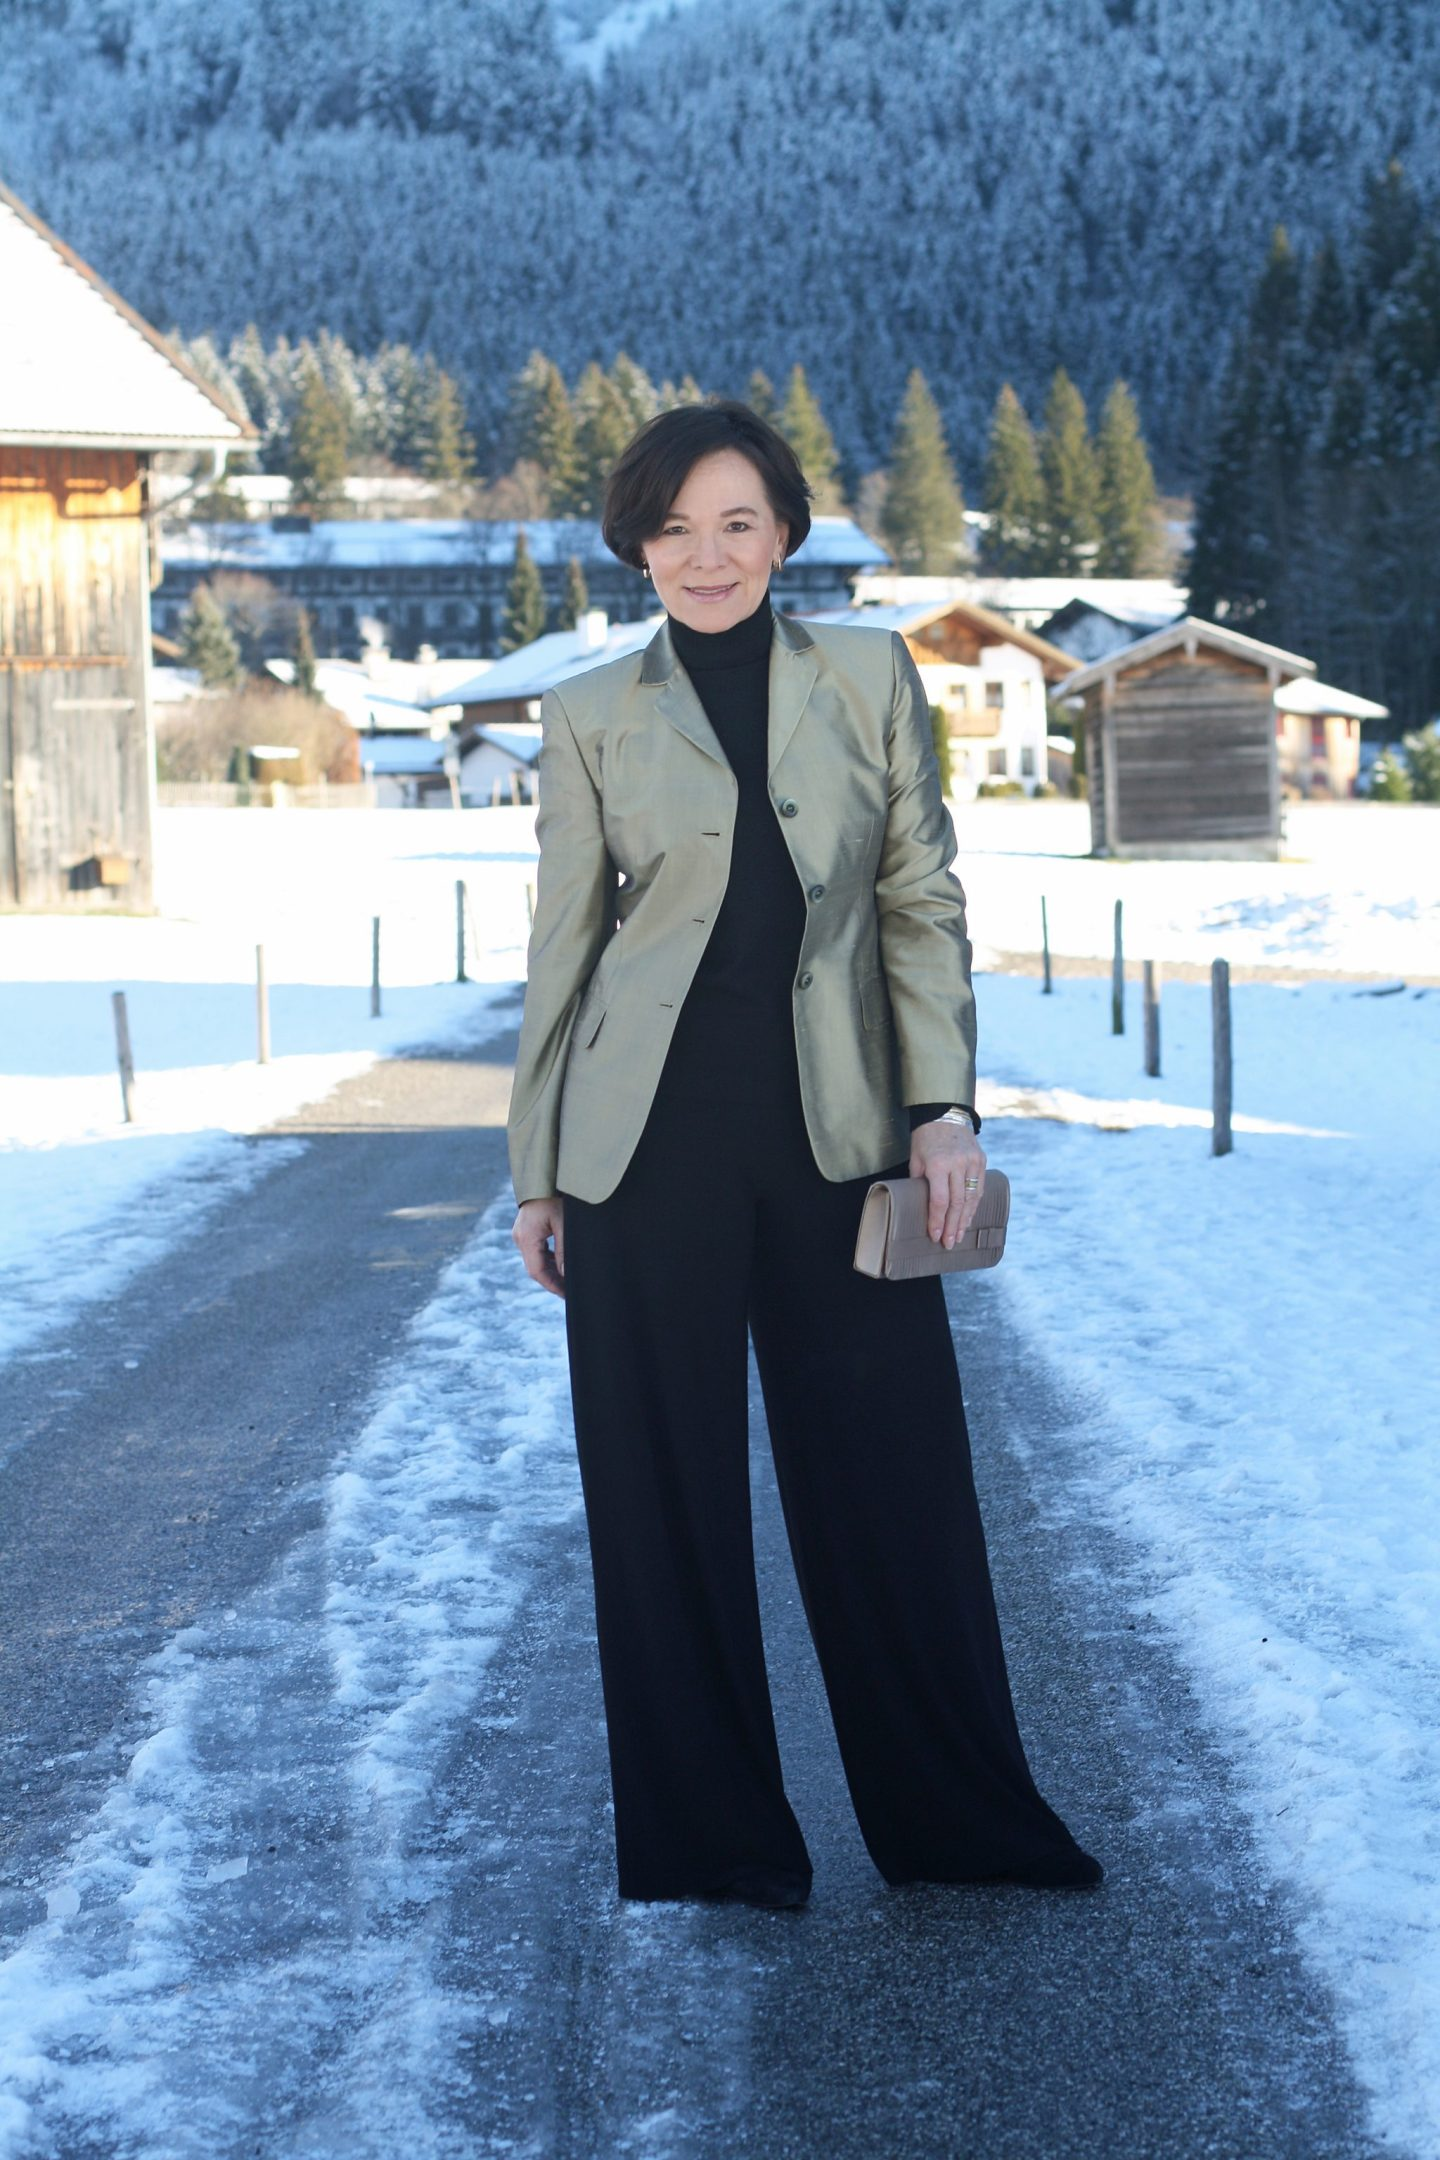 Marlenehose Seidenblazer Eleganz Winterlook Businesslook 50plus Blogger LadyofStyle